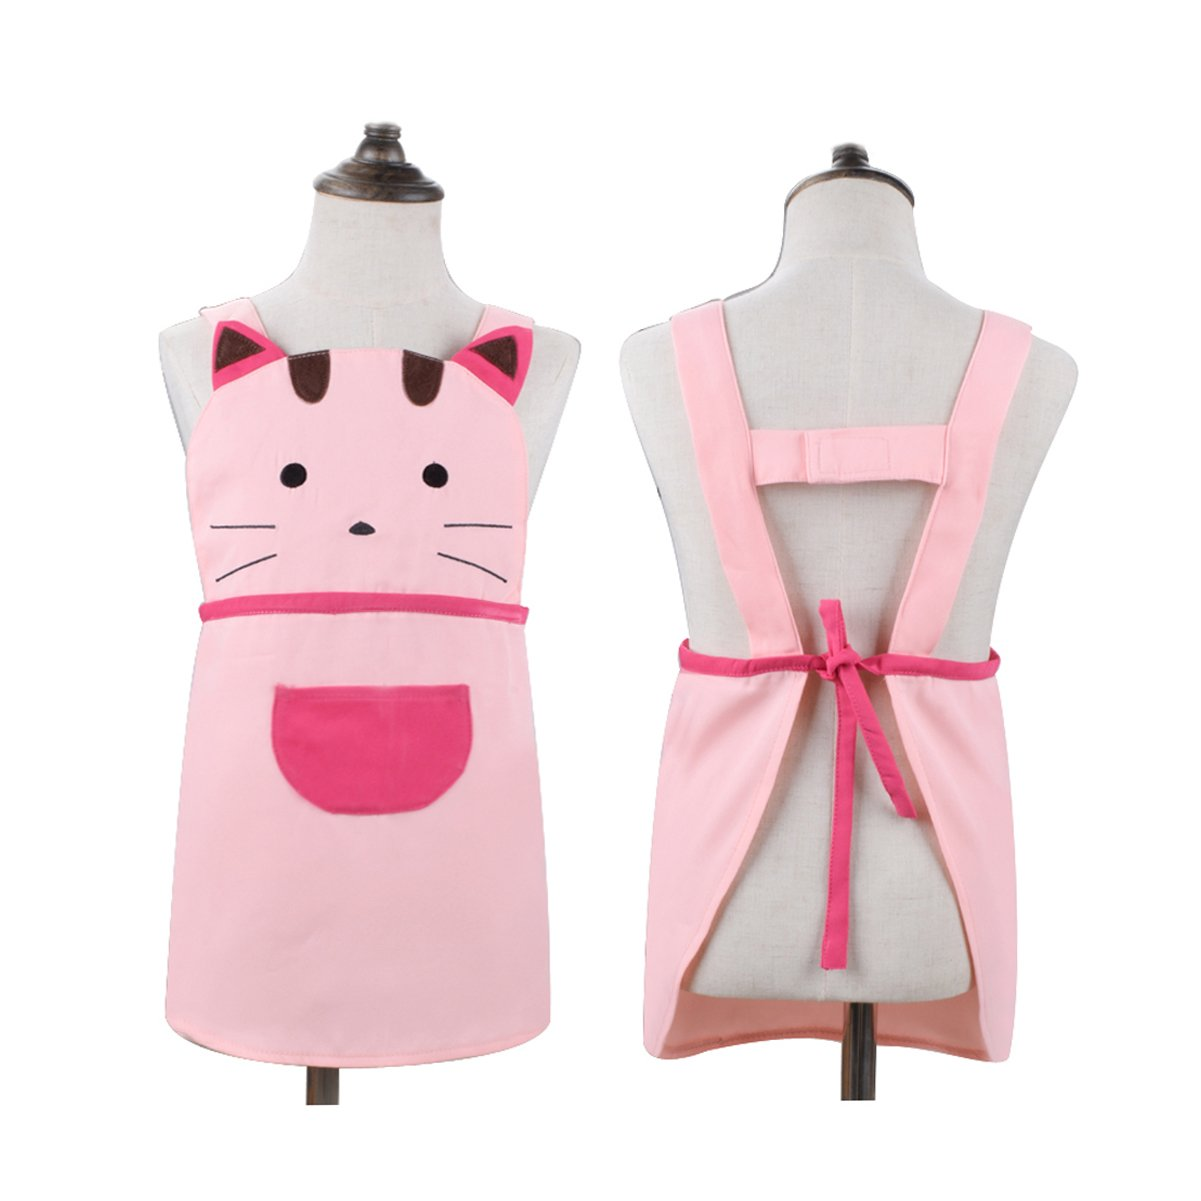 Love Potato Cute Girls Kids Toddler Cartoom Cat Embroidered Apron Cotton Children Apron Chef Kitchen Cooking Baking Apron for Kids 2-4 Years Old (Pink)